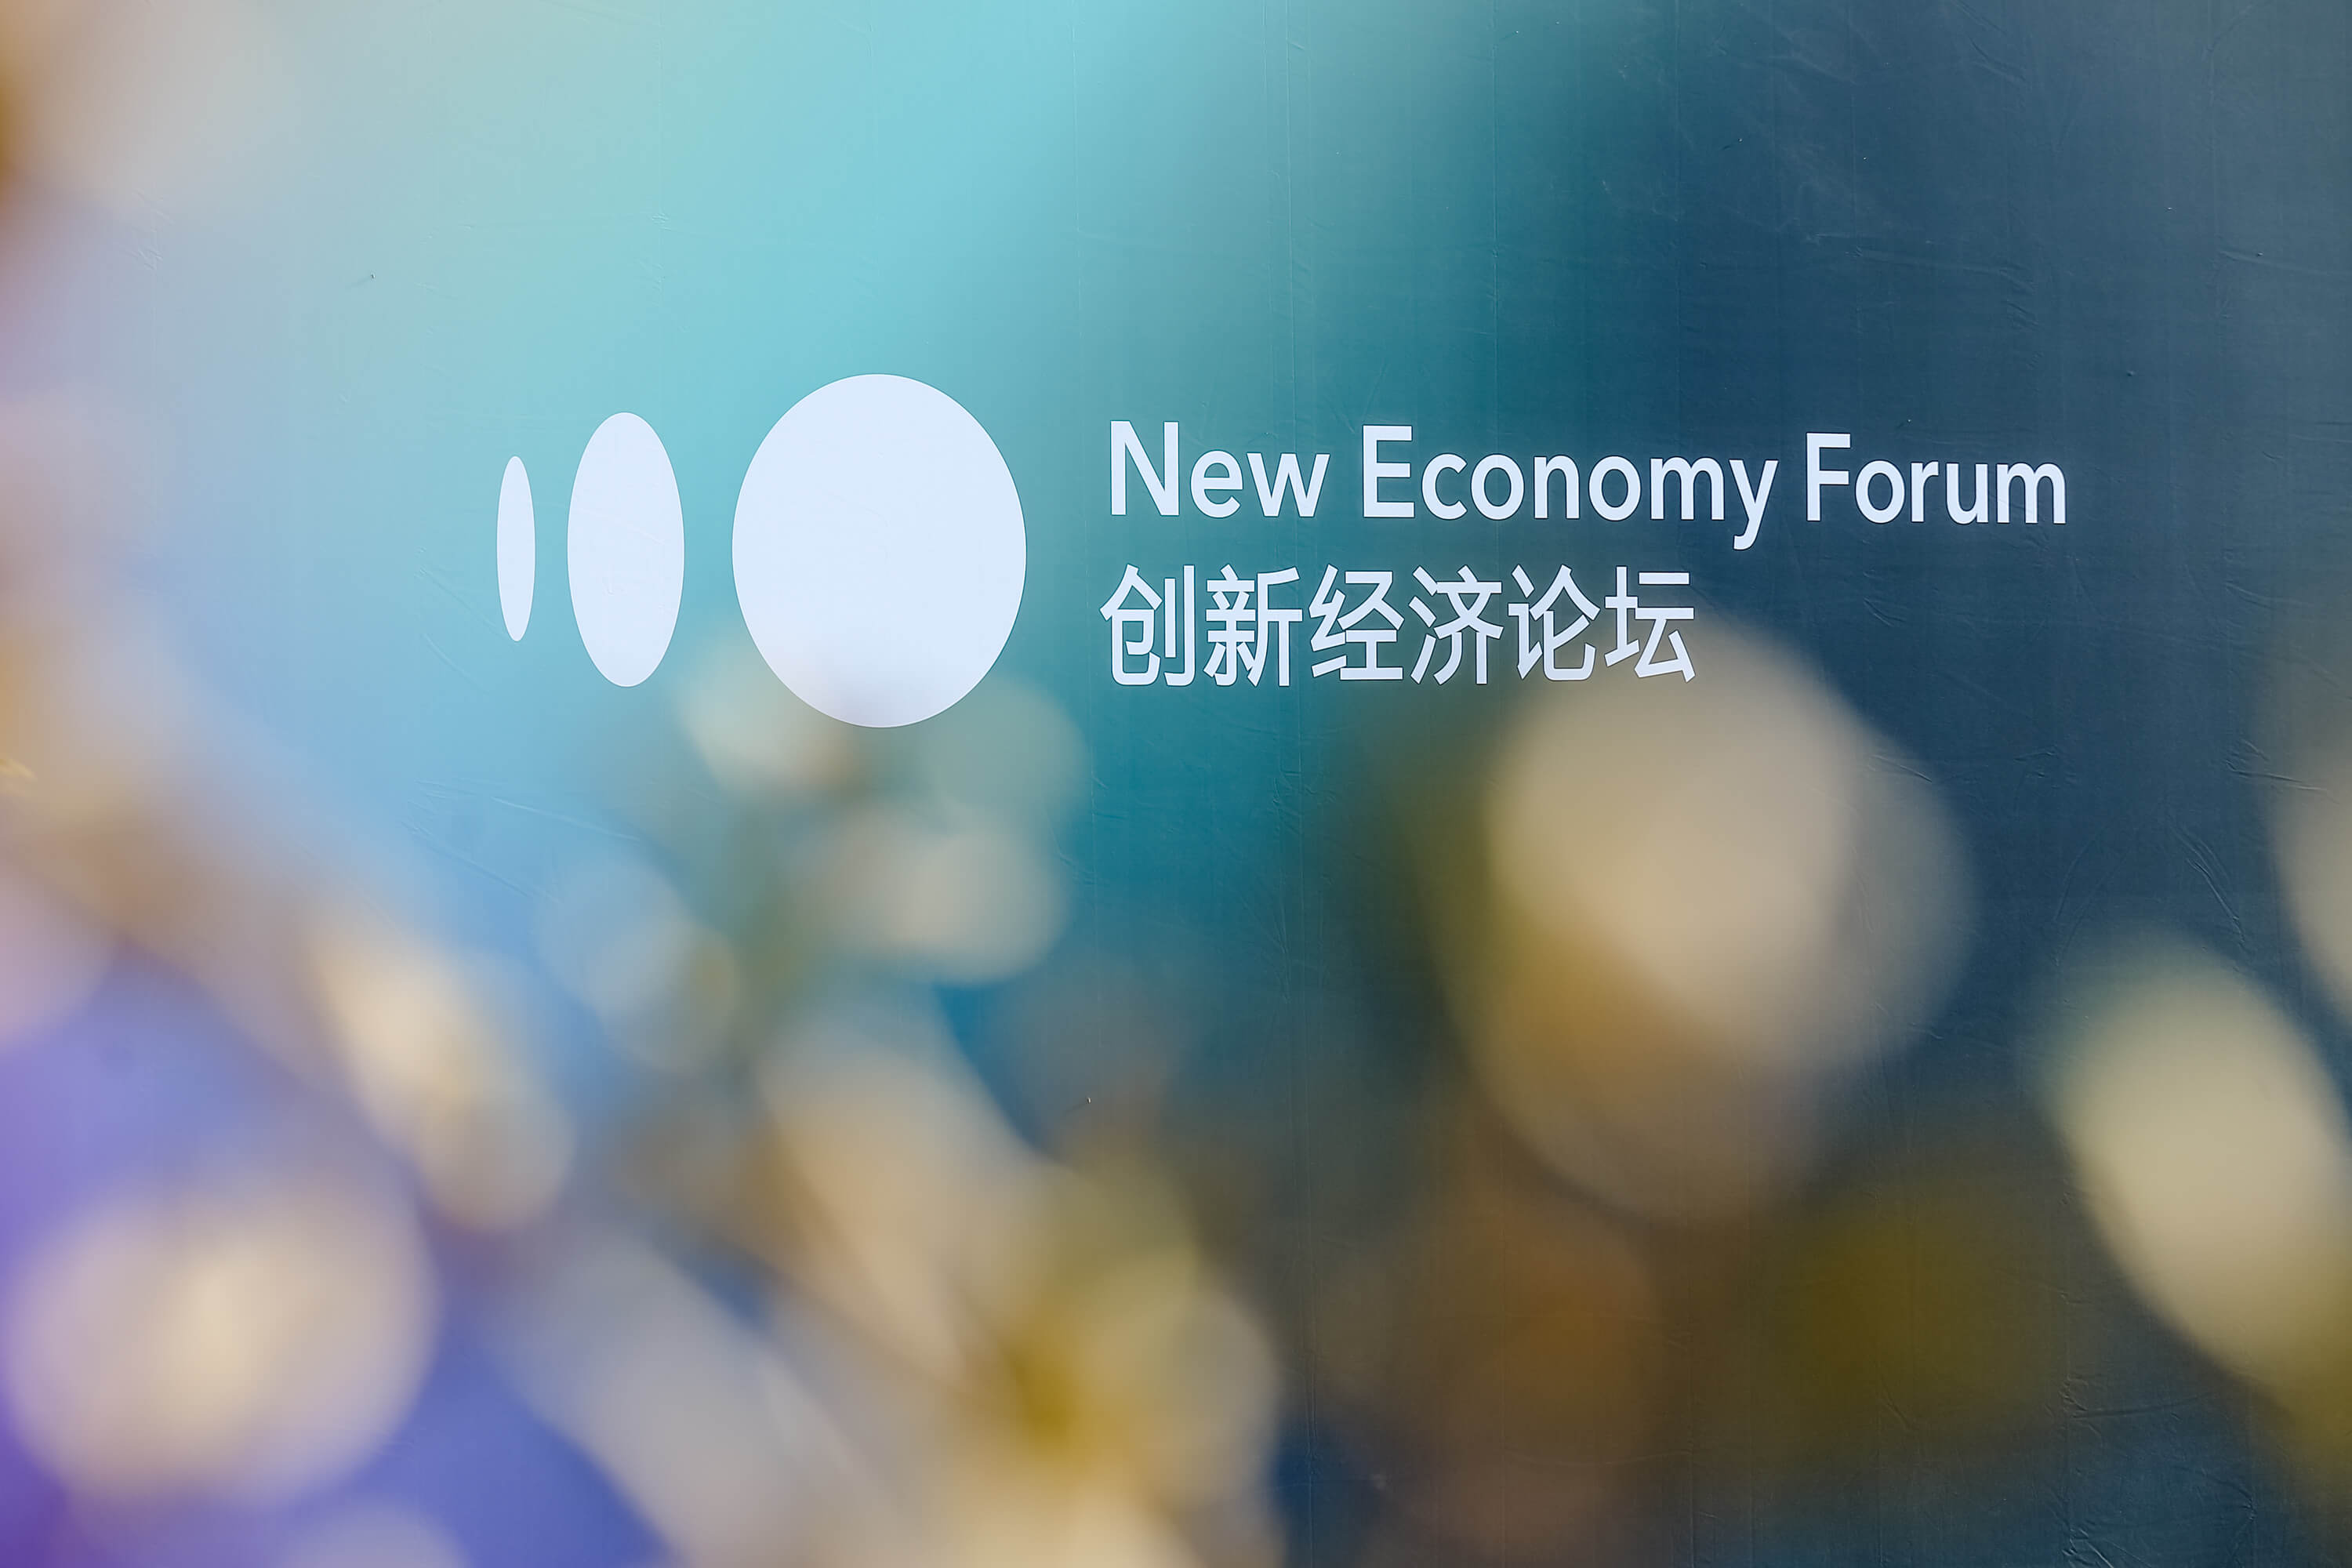 400 of the World's Most Influential Business and Government Leaders to Attend Bloomberg's First-Ever New Economy Forum in Singapore on November 6-7, 2018